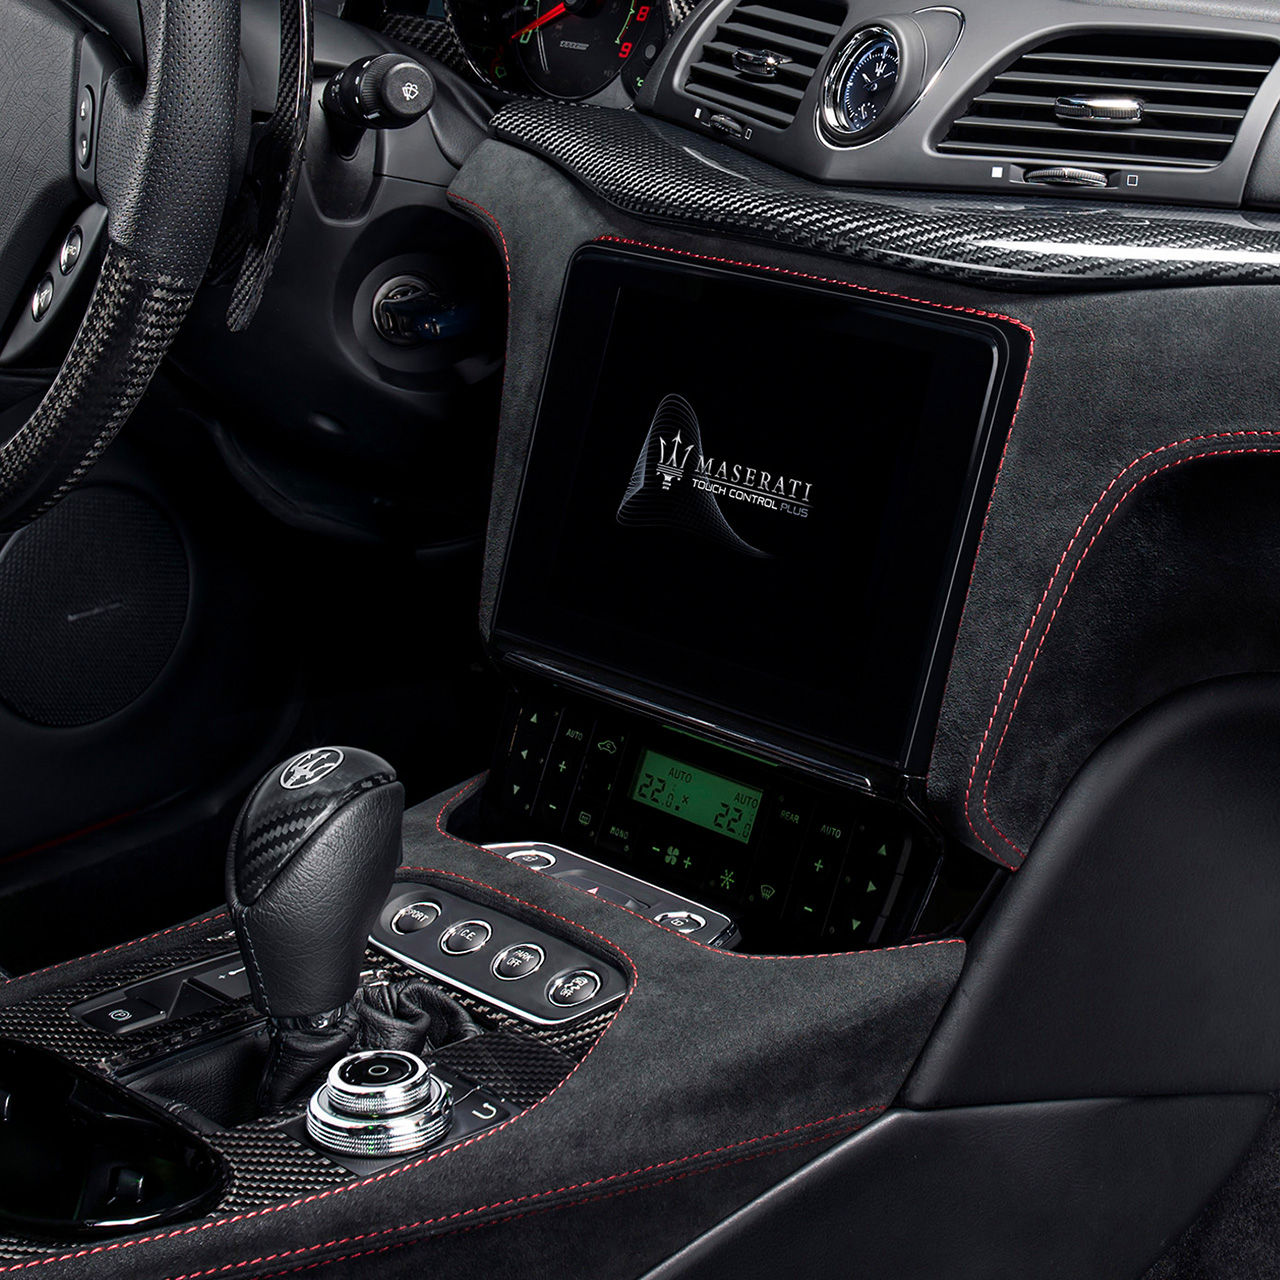 Maserati GranTurismo - new infotainment system, touchscreen display and interior's details